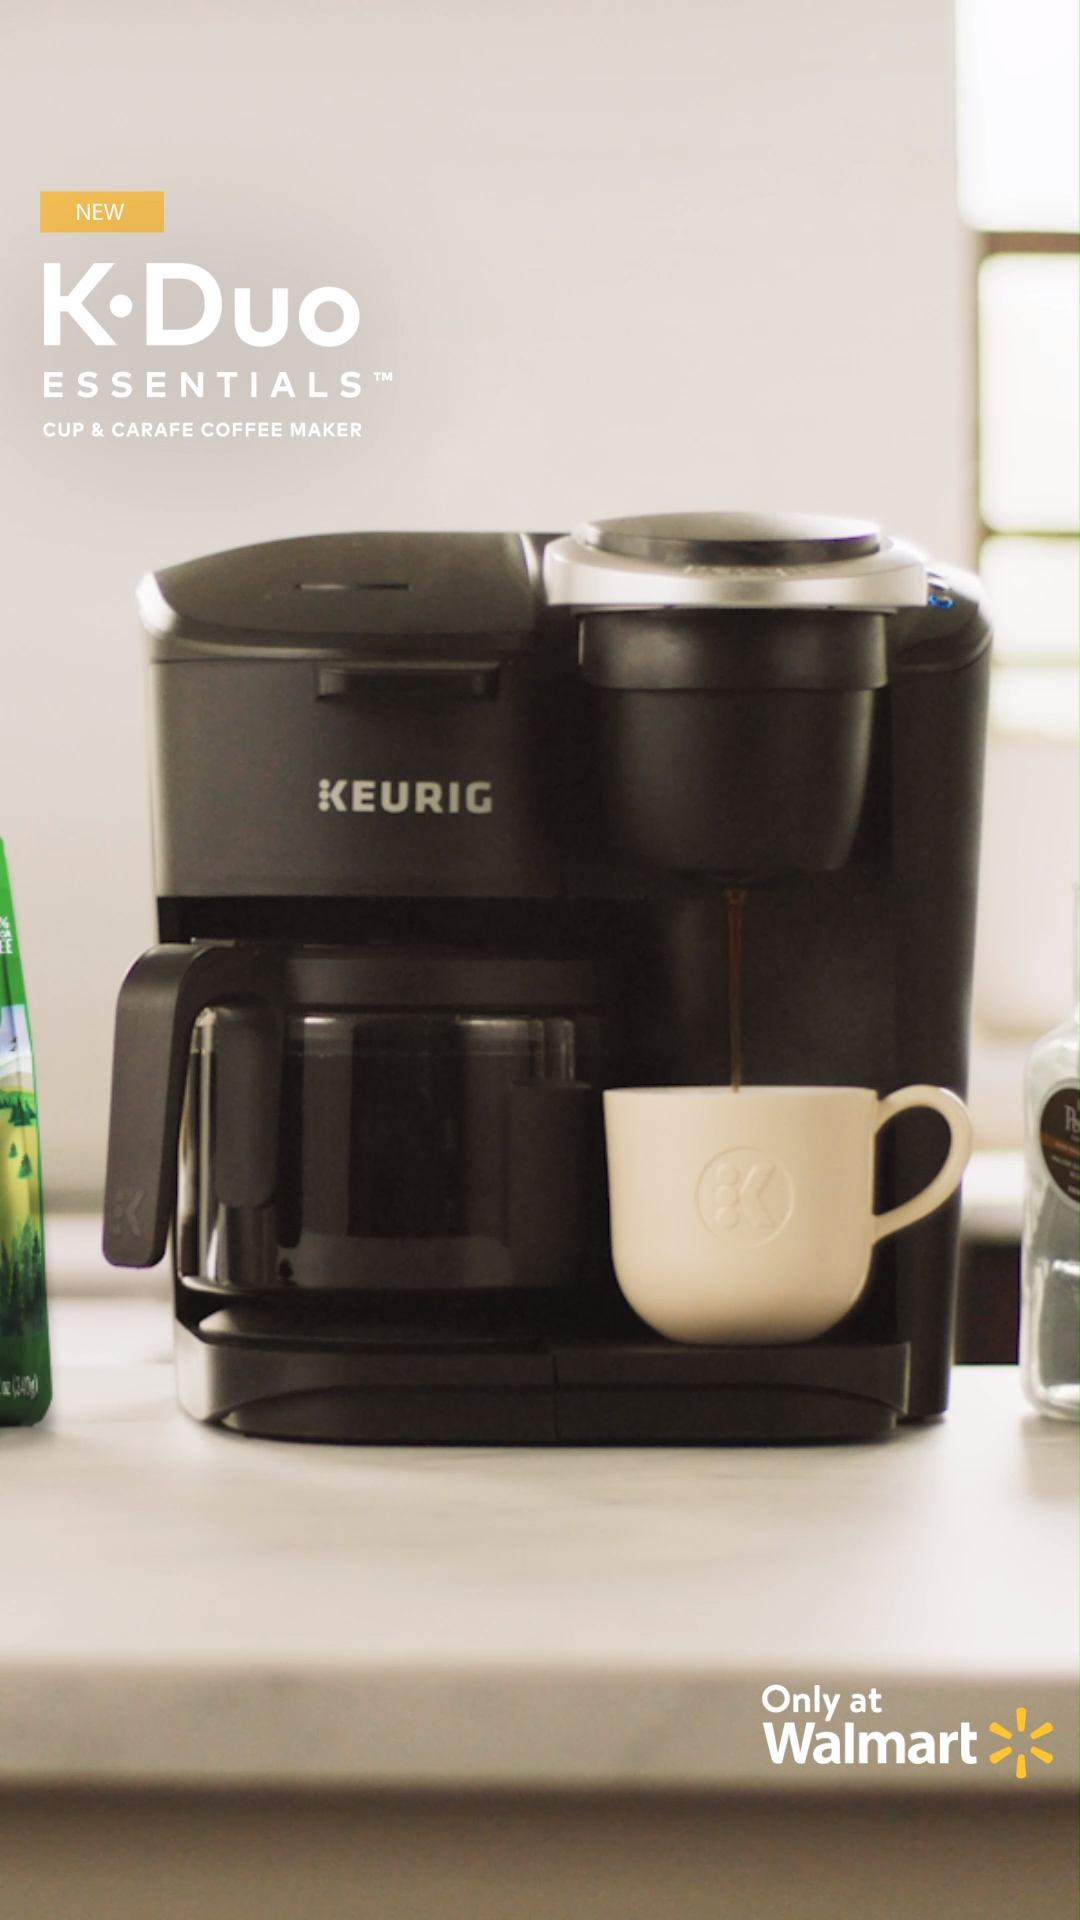 Introducing the new KDuo Essentials brewer, our allin